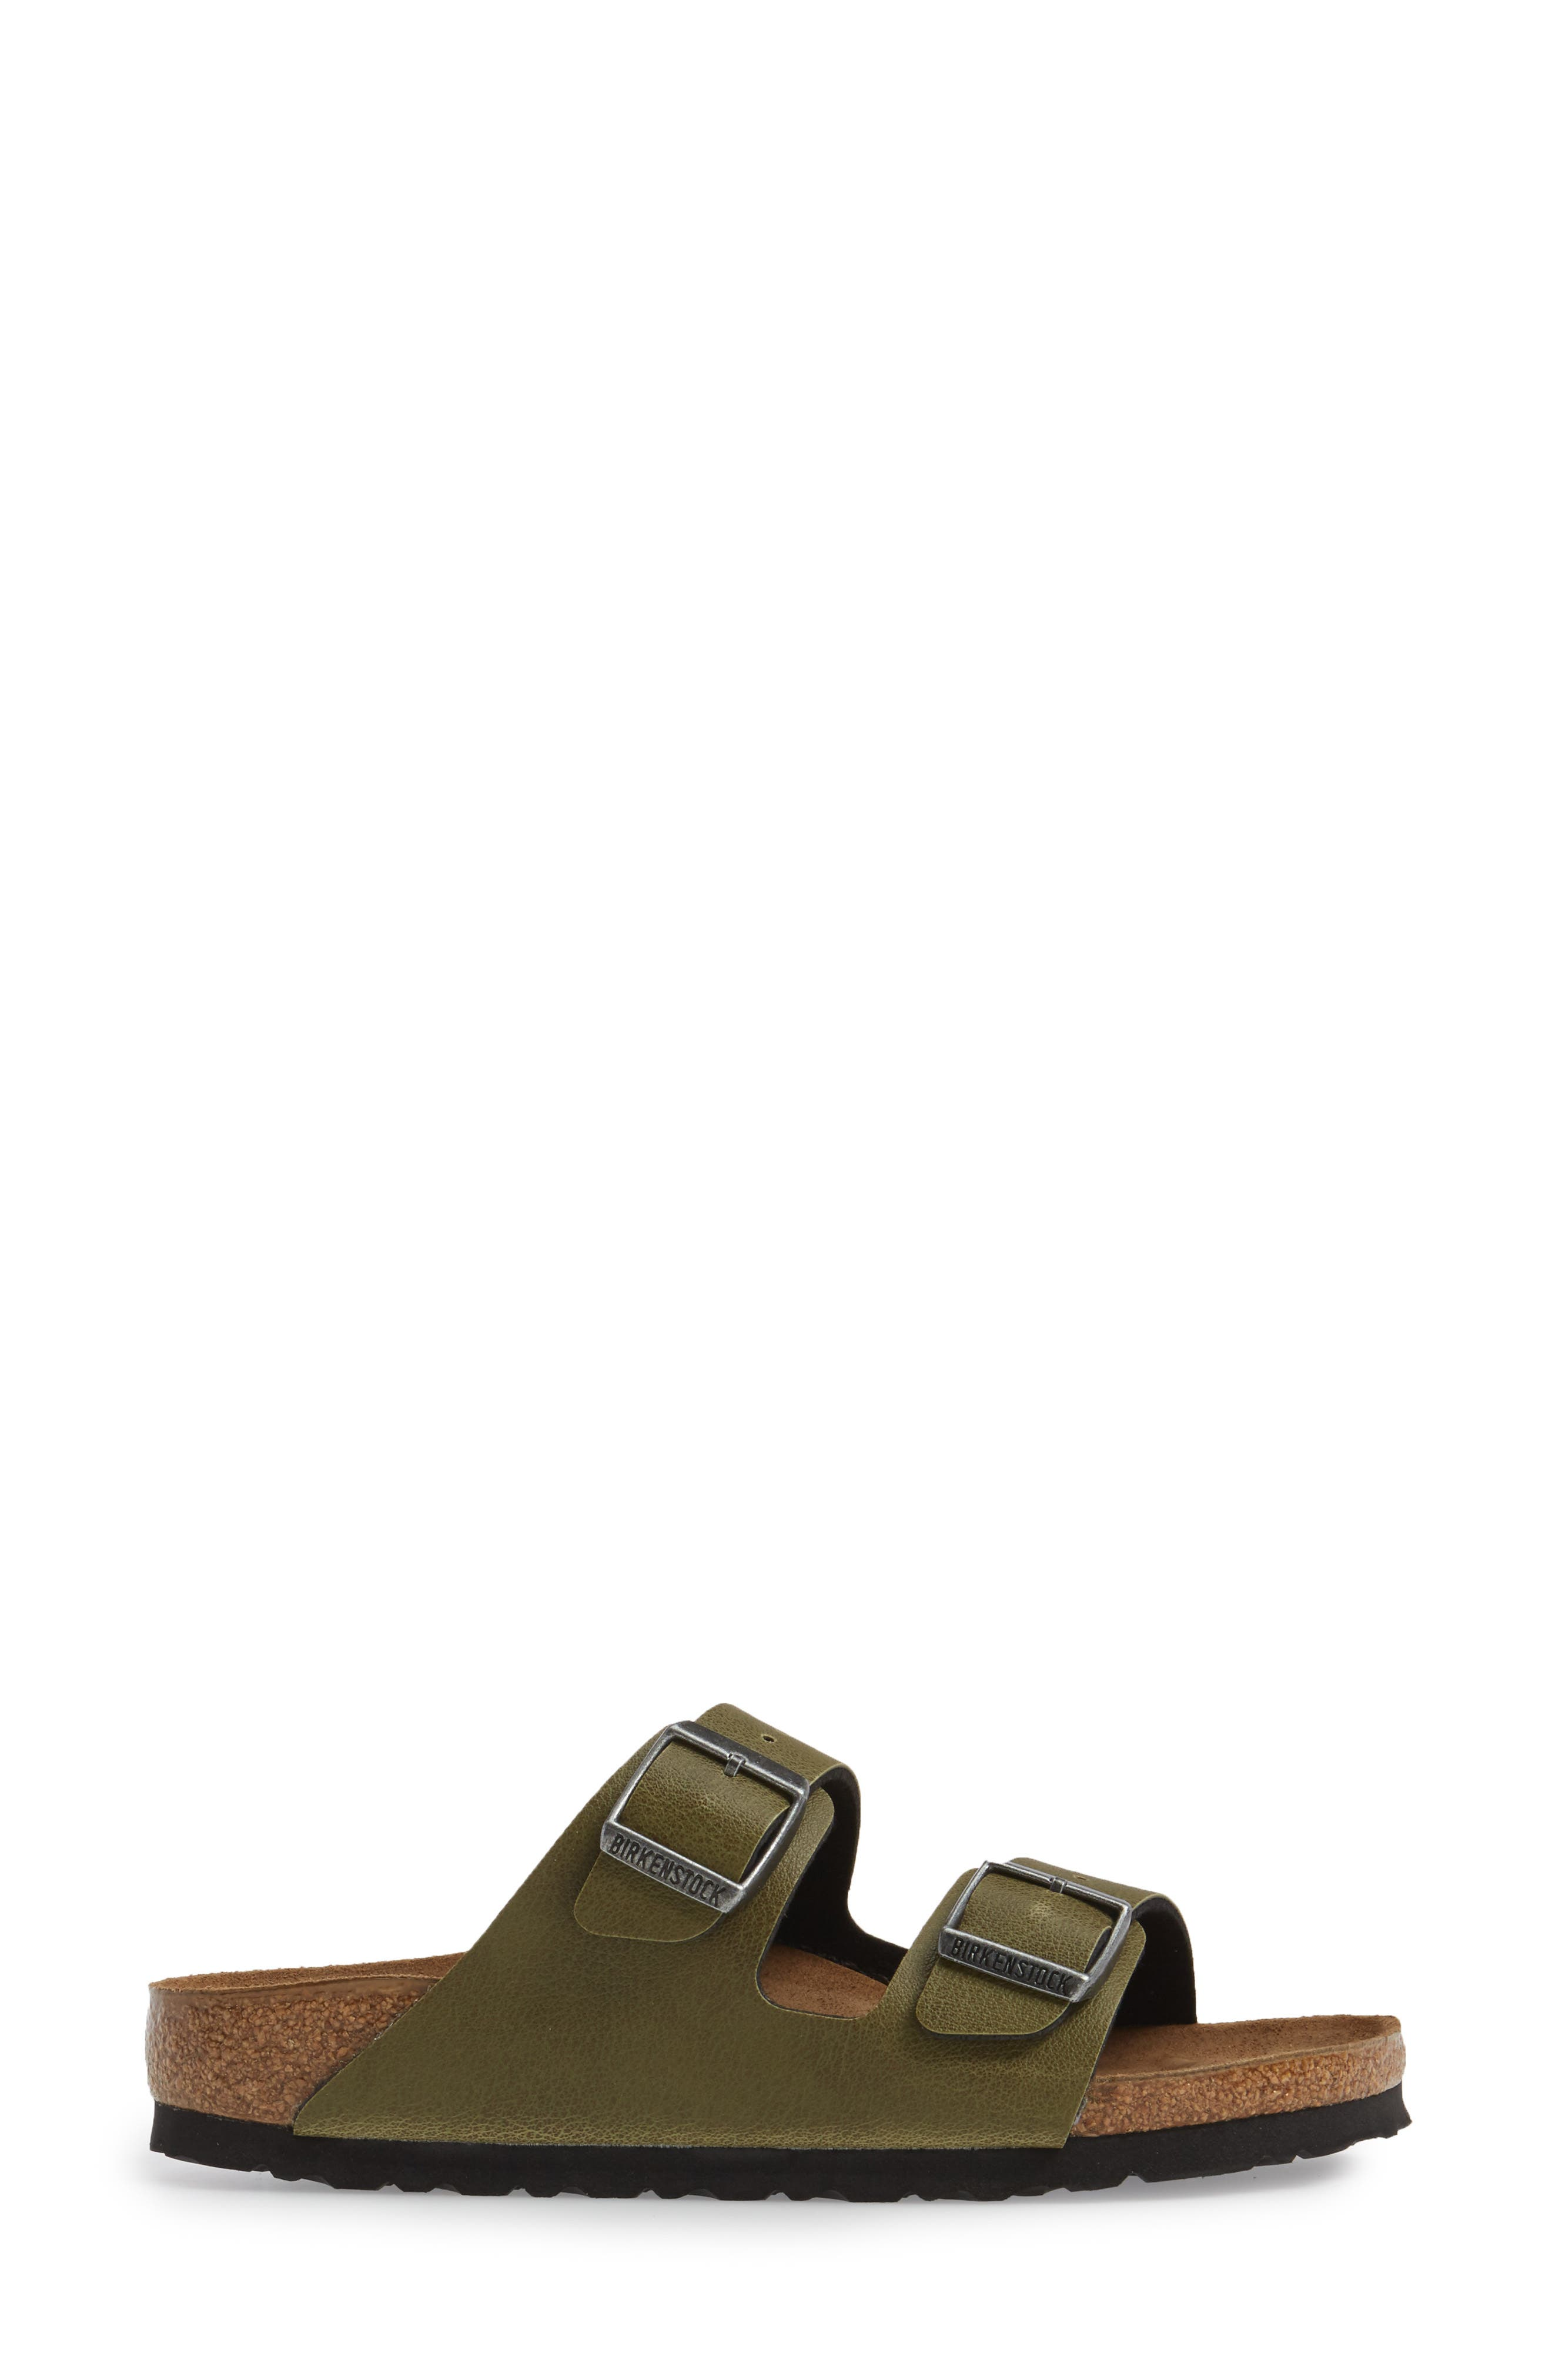 Papillio by Birkenstock 'Arizona' Birko-Flor Sandal,                             Alternate thumbnail 32, color,